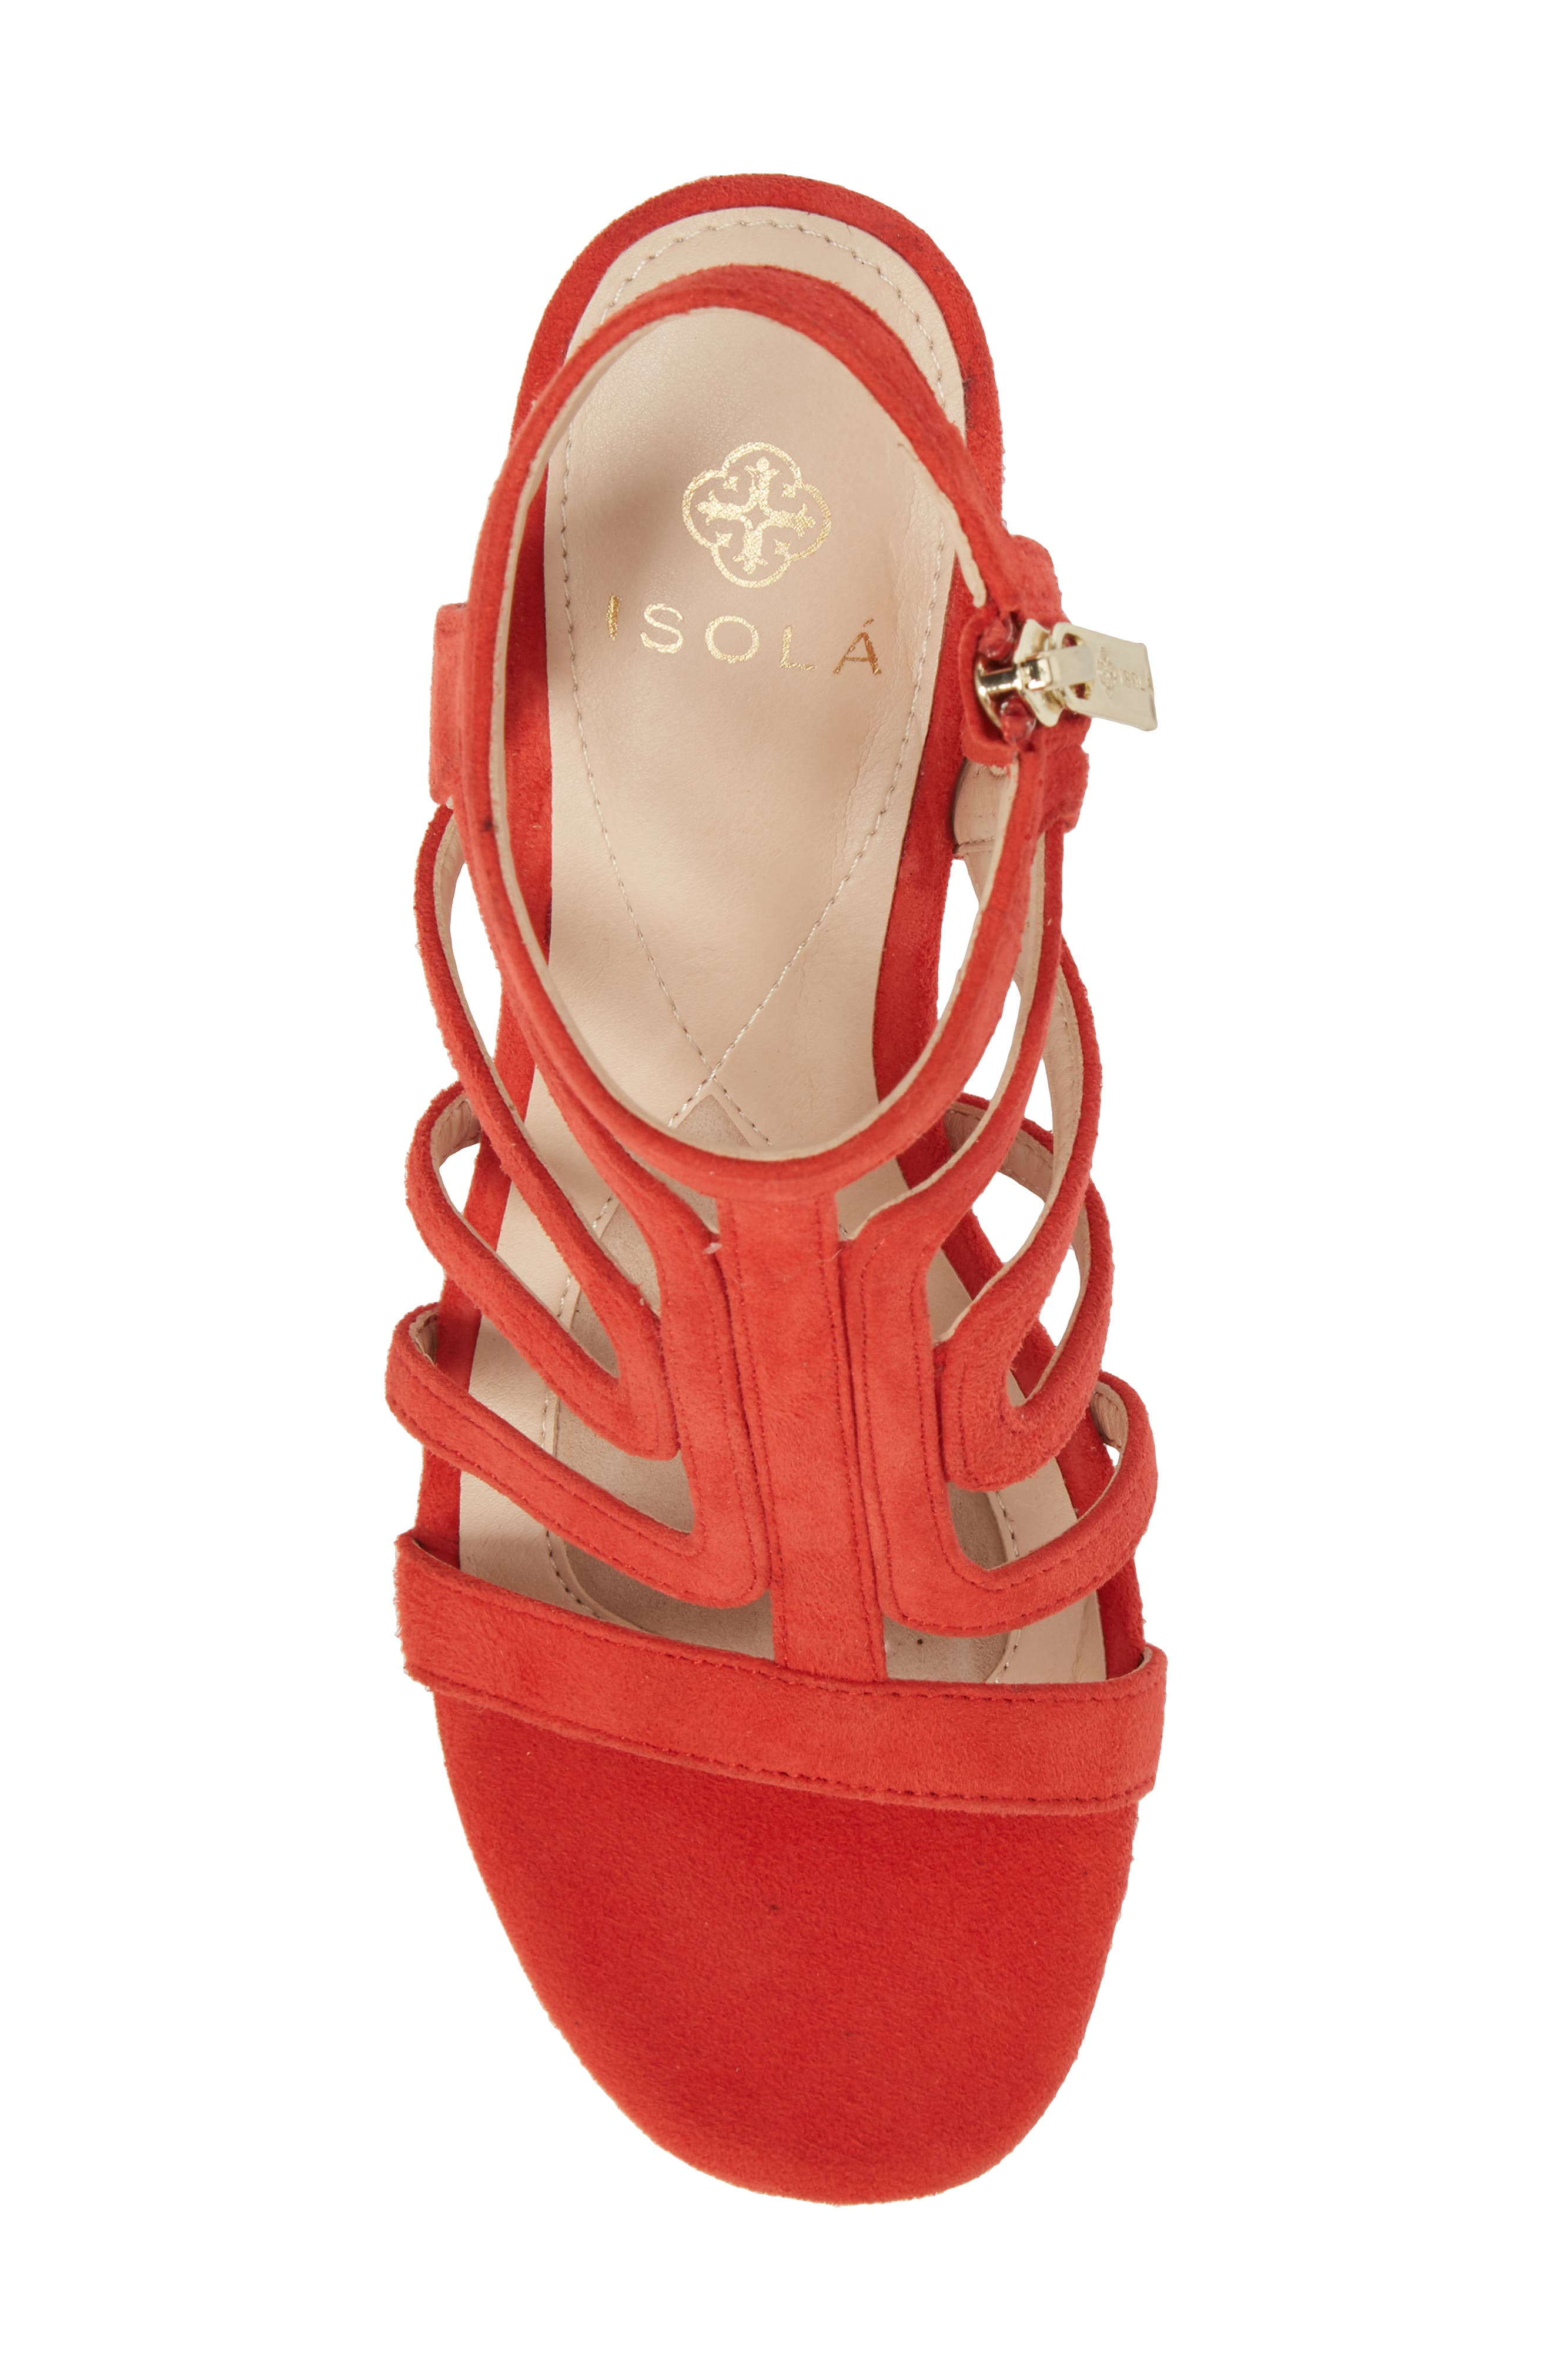 Lina Sandal,                             Alternate thumbnail 5, color,                             Lipstick Red Suede